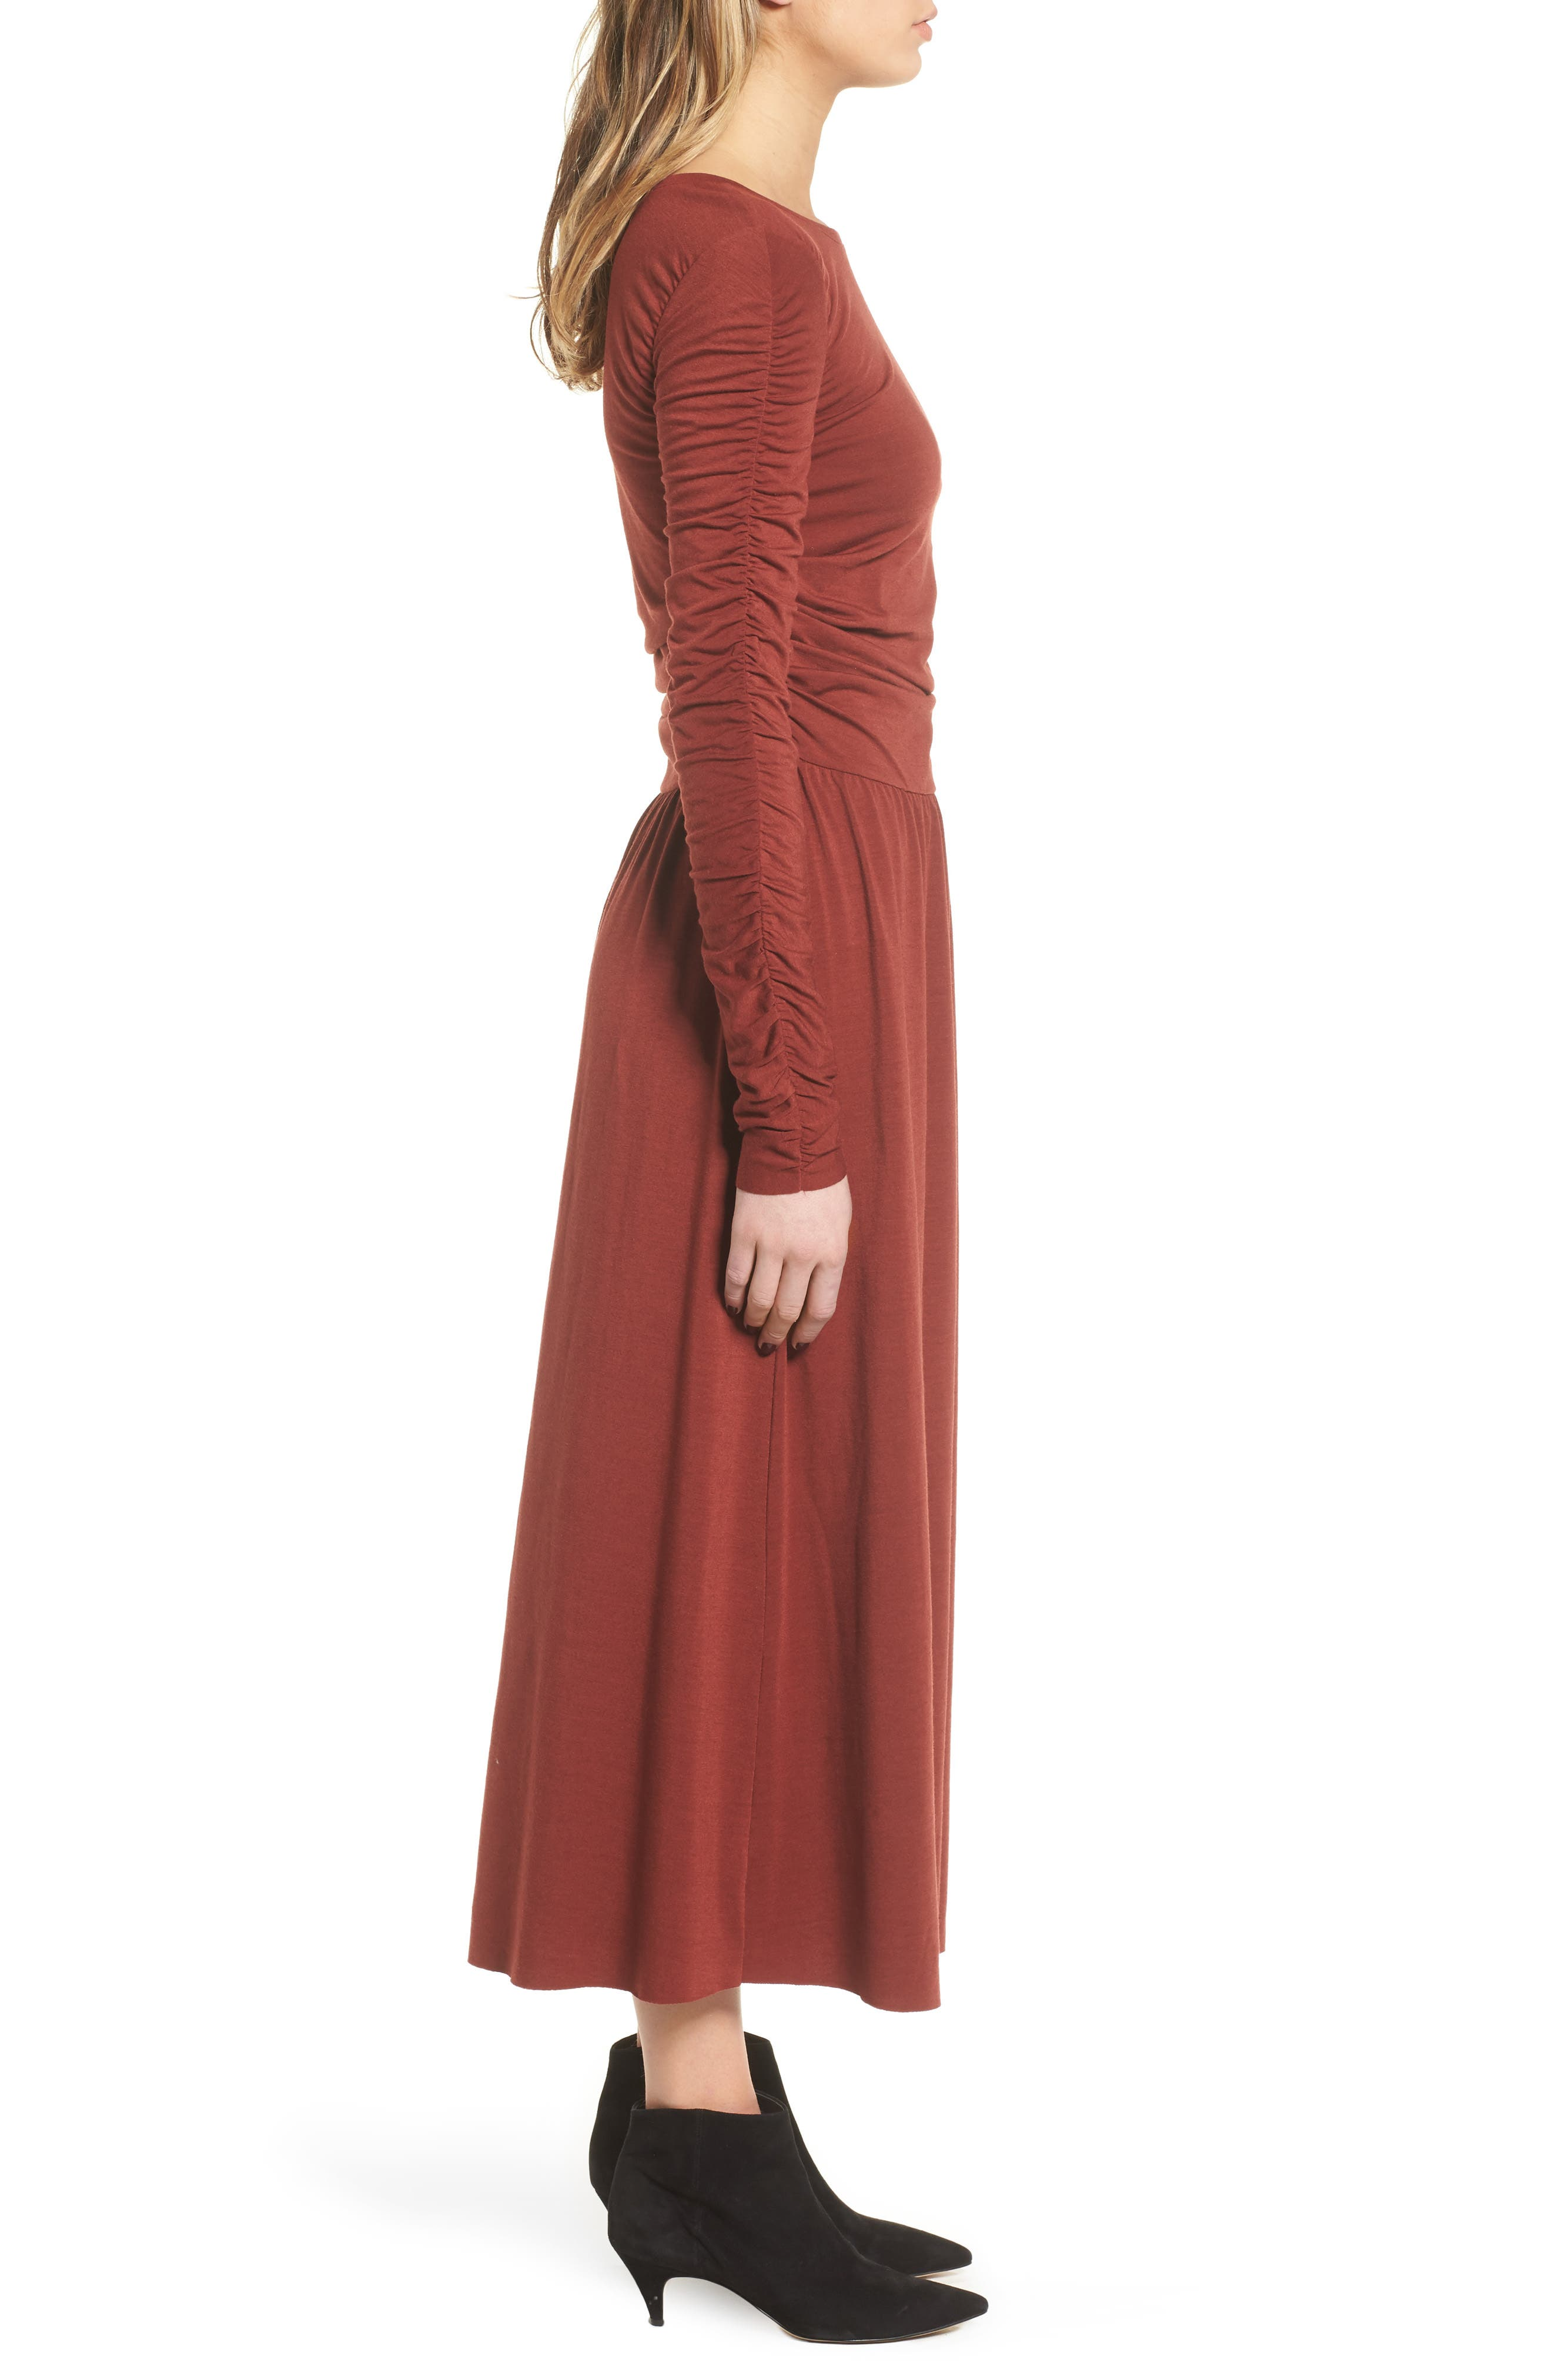 Ruched Jersey Knit Dress,                             Alternate thumbnail 3, color,                             200